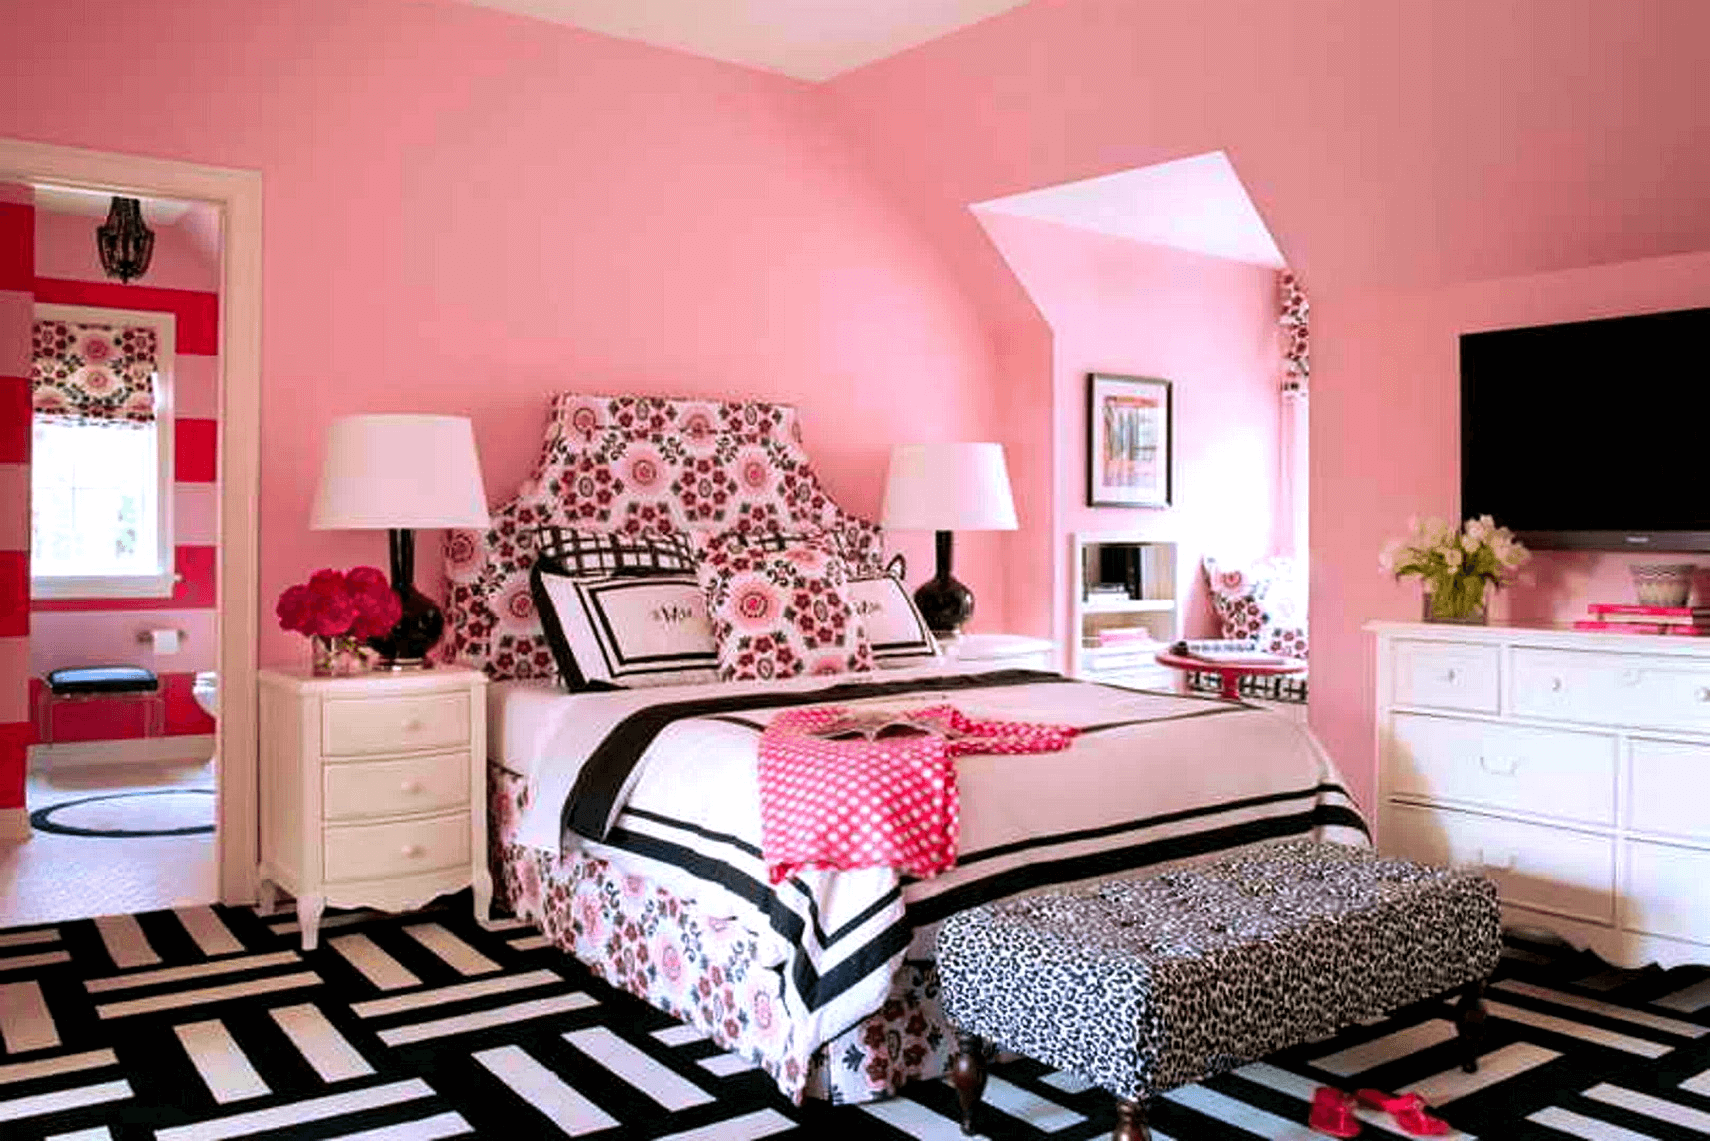 12 Romantic Master Bedroom Décor Ideas for Small Space ...